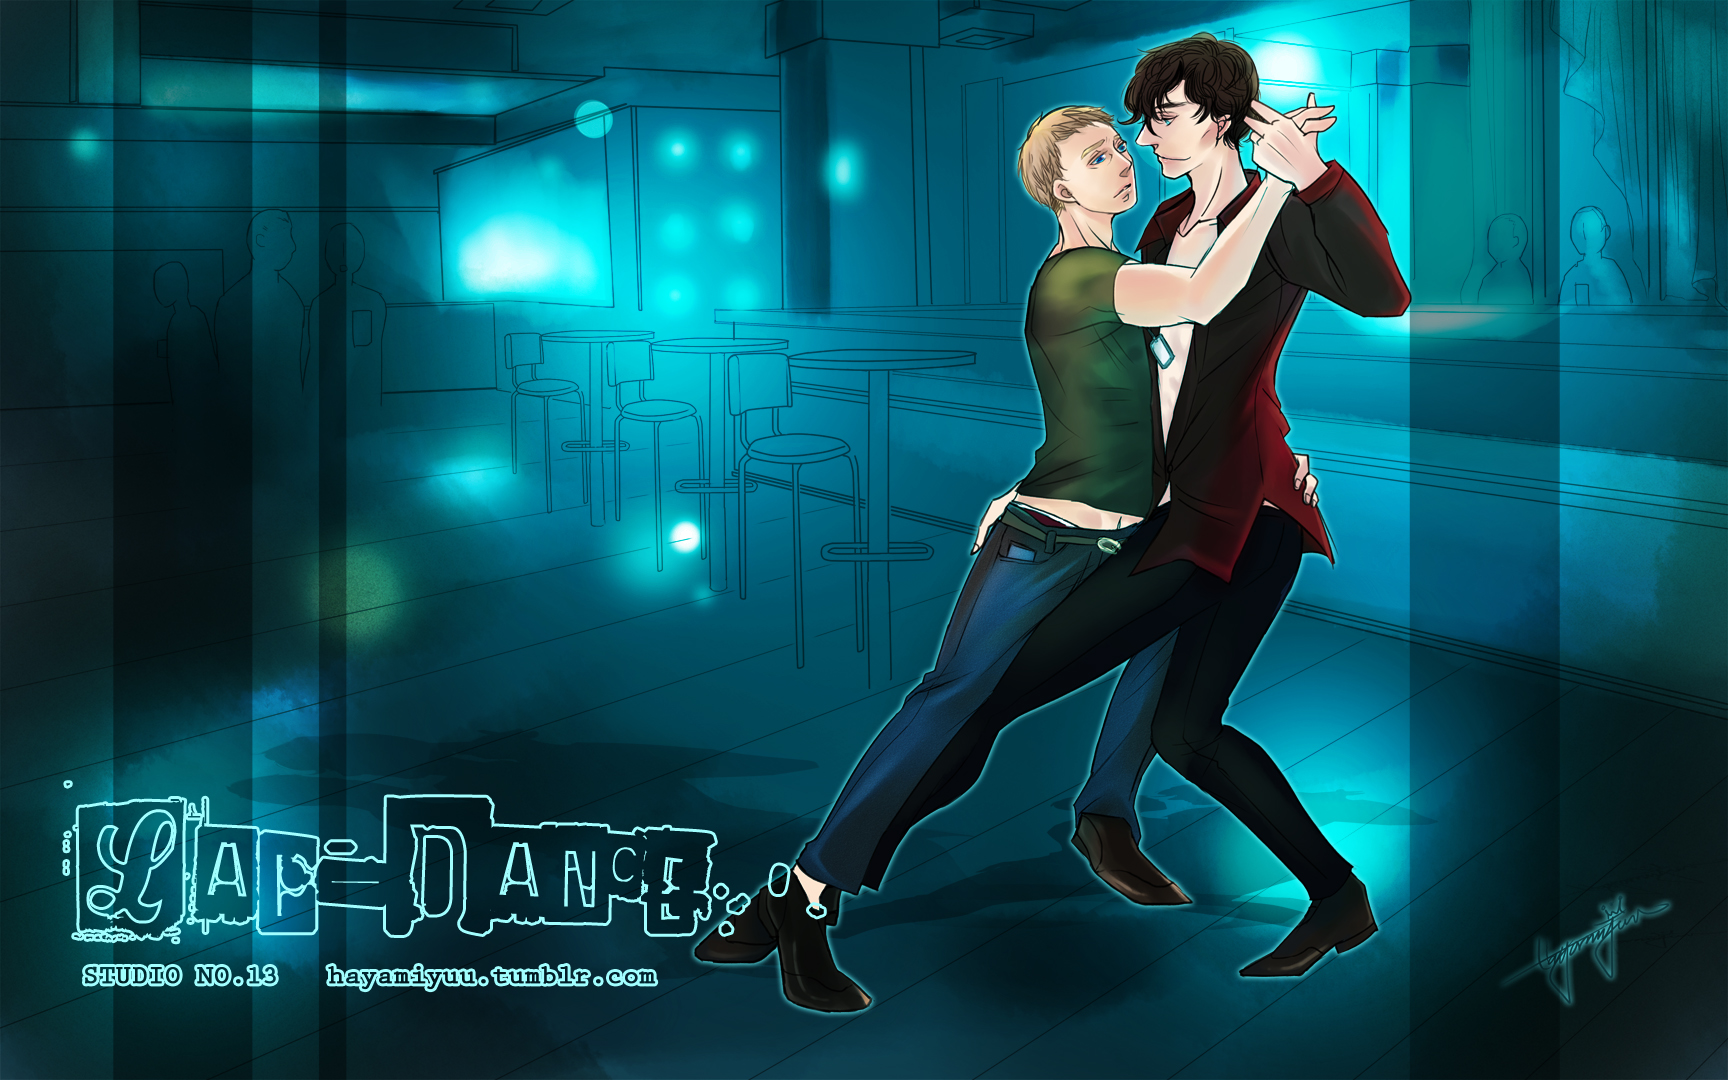 Lap-dance-SherlockXJohn (RE) by hayamiyuu